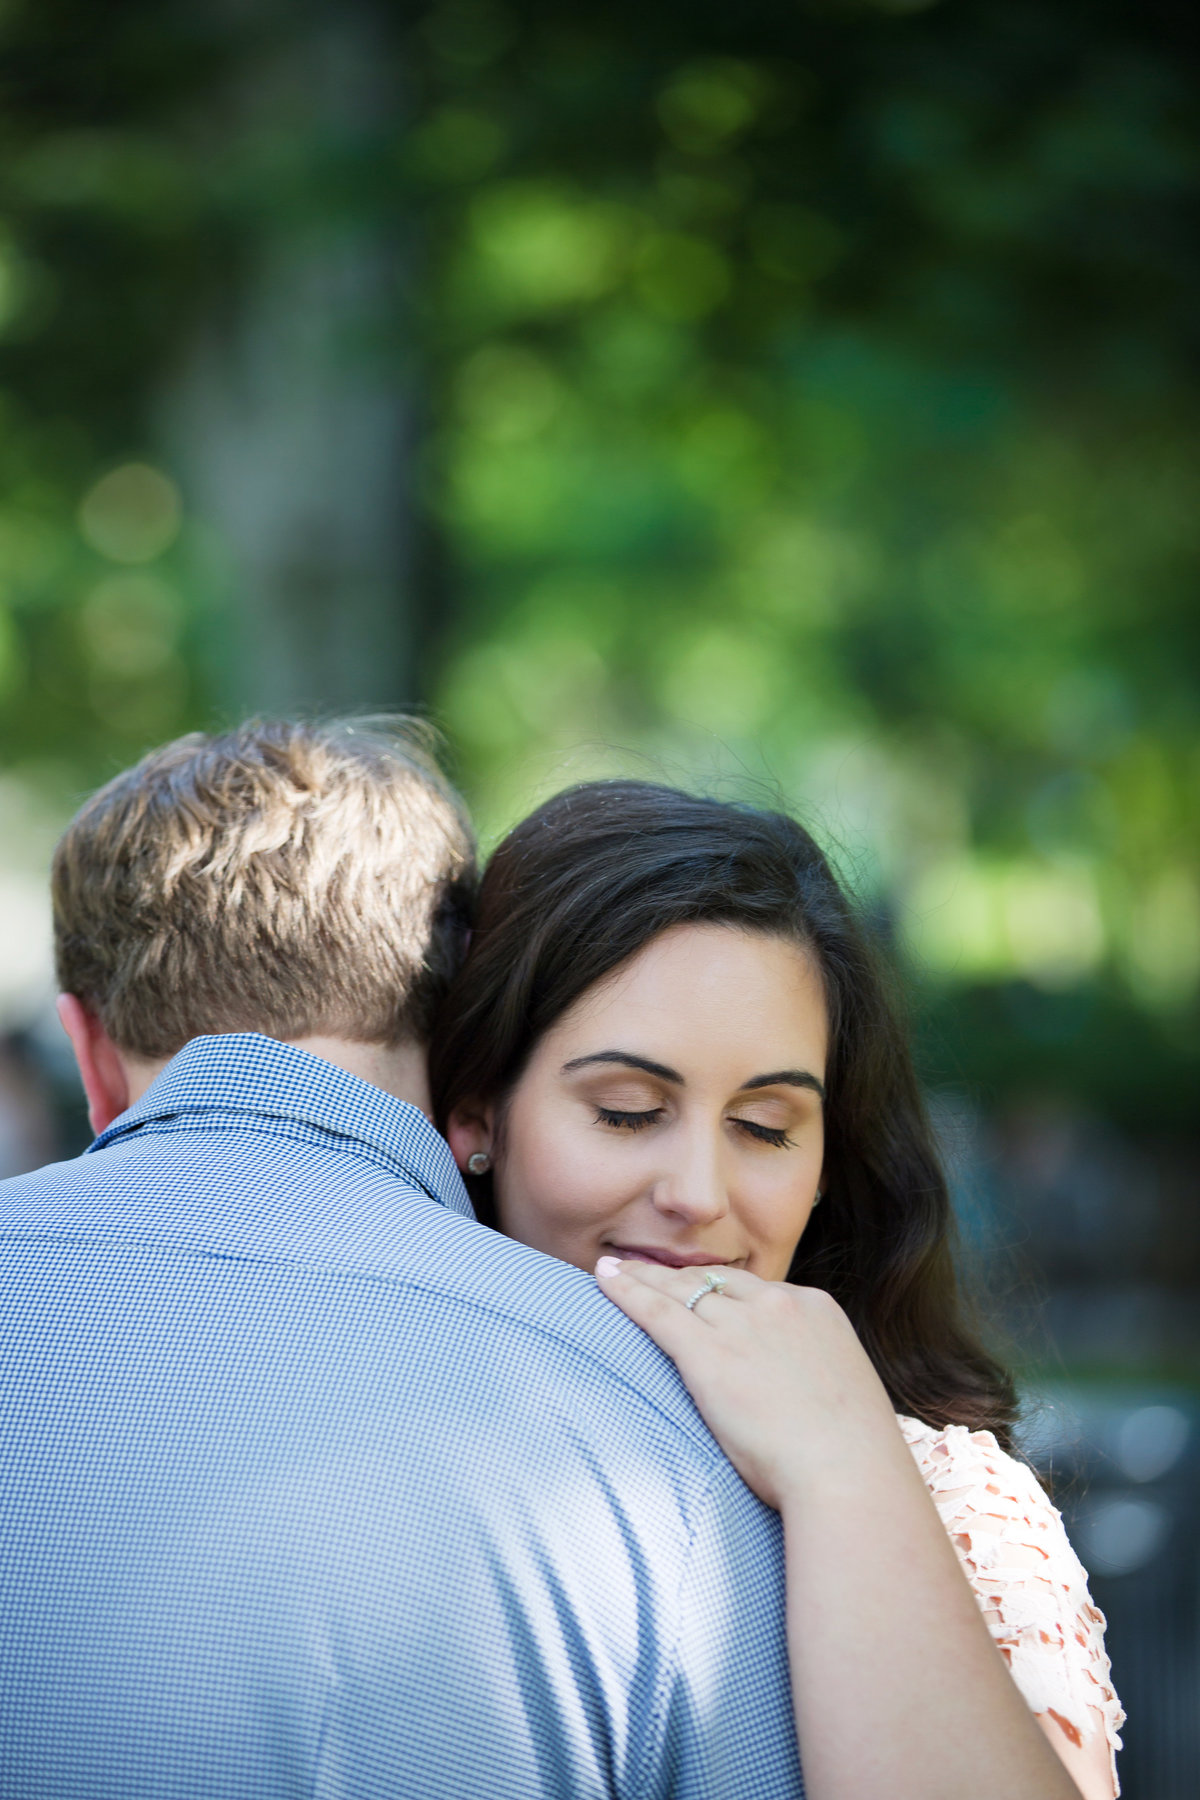 Rittenhouse-Square-Engagement-Mariya-Stecklair-Photography-21